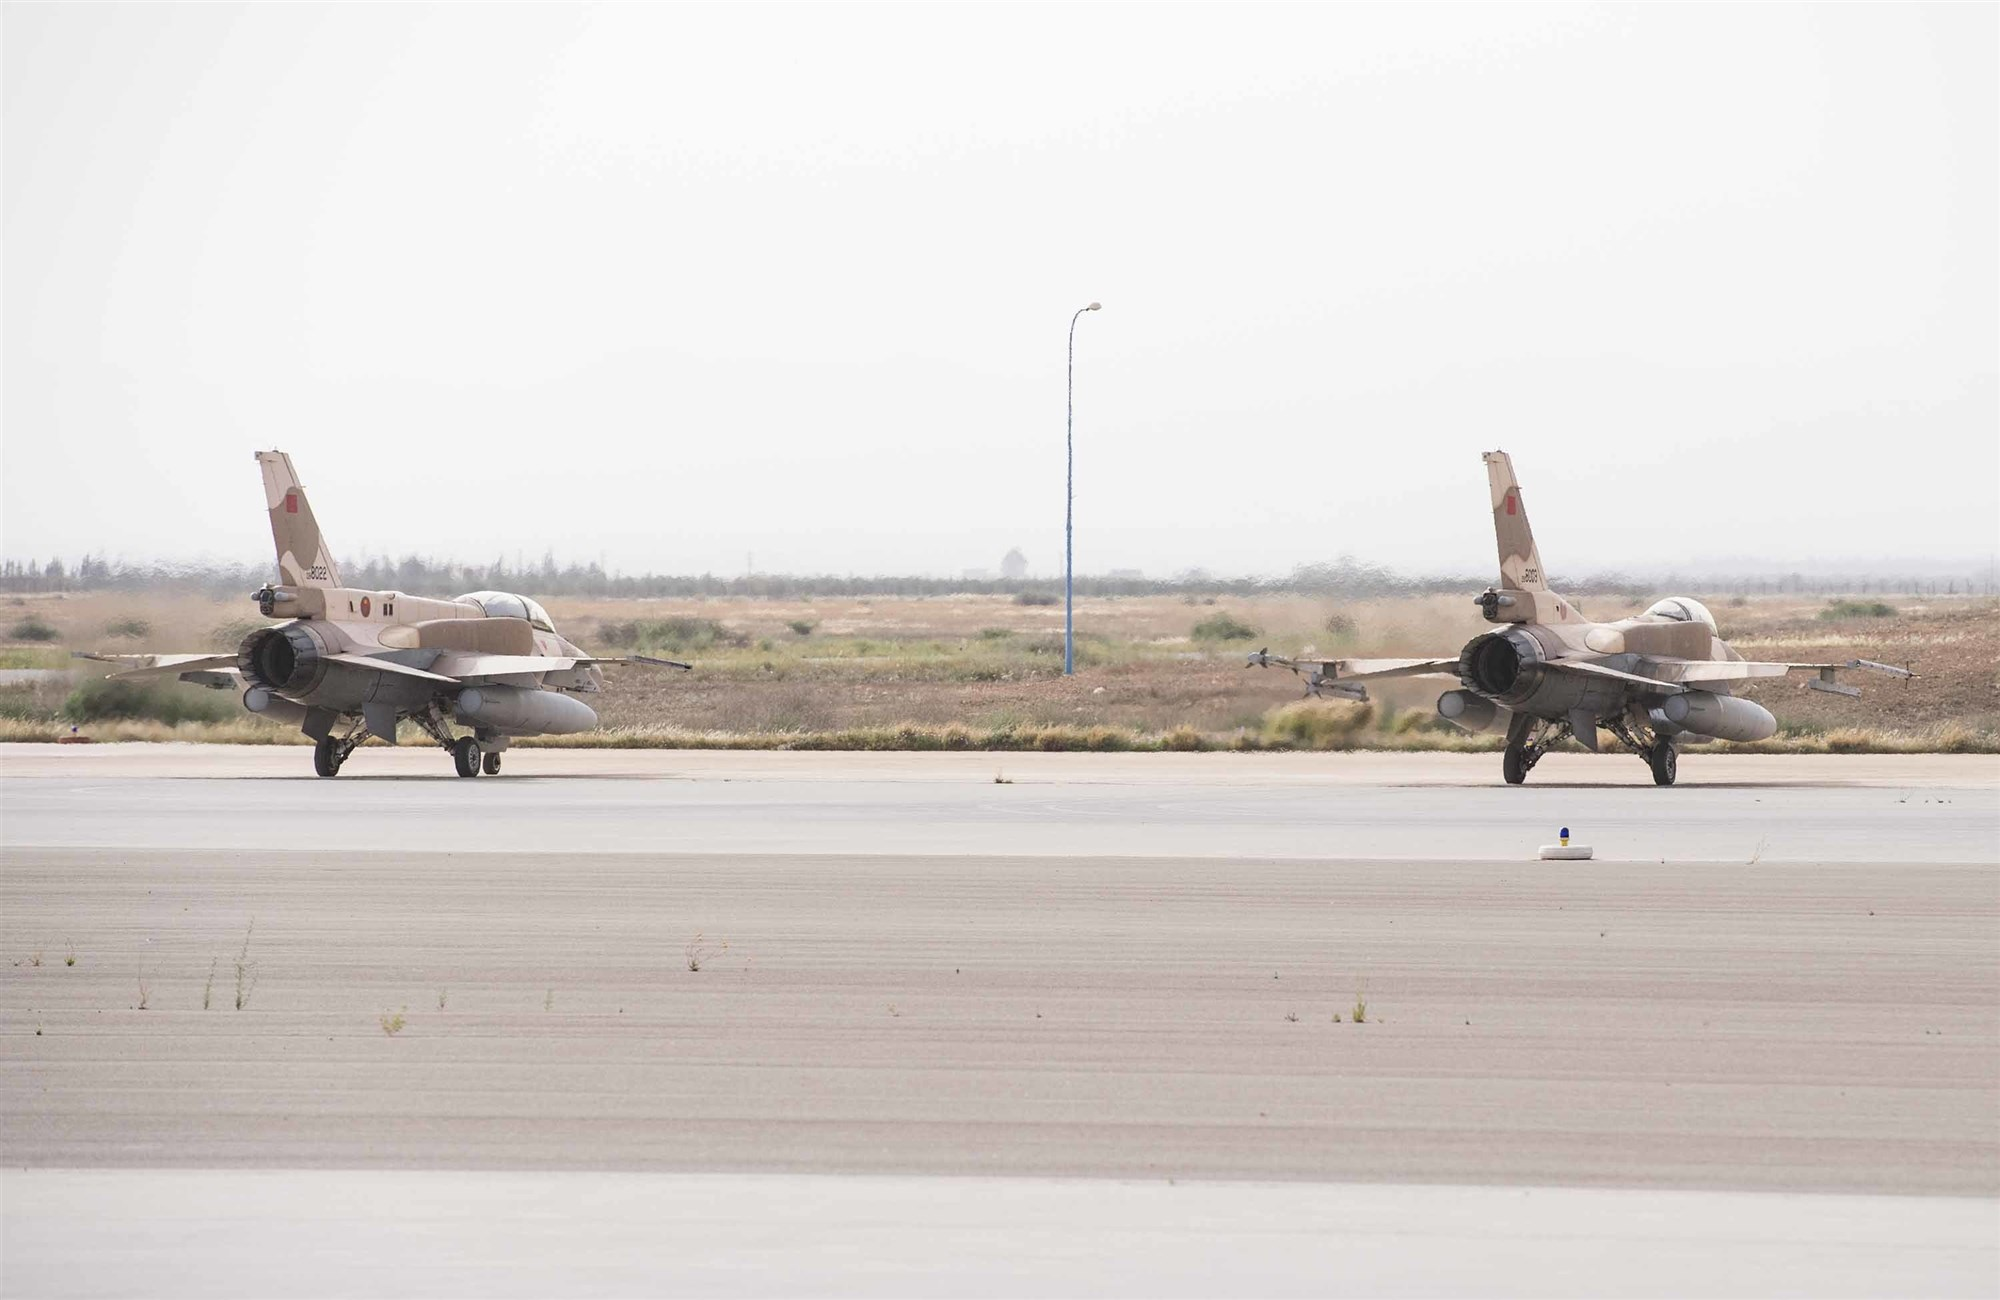 Two Royal Moroccan Air Force F-16s rests on the flight line during exercise African Lion 2019 at Ben Guerir Air Base, Morocco, March 25, 2019. The exercise allowed Moroccan and U.S. F-16s to train together on the tactics, techniques and procedures necessary in a real-world scenario  to counter-violent extremist organizations. African Lion 2019 is a Chairman of the Joint Chiefs of Staff-sponsored, U.S. Africa Command-scheduled, U.S. Marine Corps Forces Europe and Africa-led, joint and combined exercise conducted in the Kingdom of Morocco with a spoke in Tunisia, and armed forces participants in from Canada, France, Senegal, Spain, and the United Kingdom. (U.S. Air Force photo by Staff Sgt. Ceaira Tinsley)